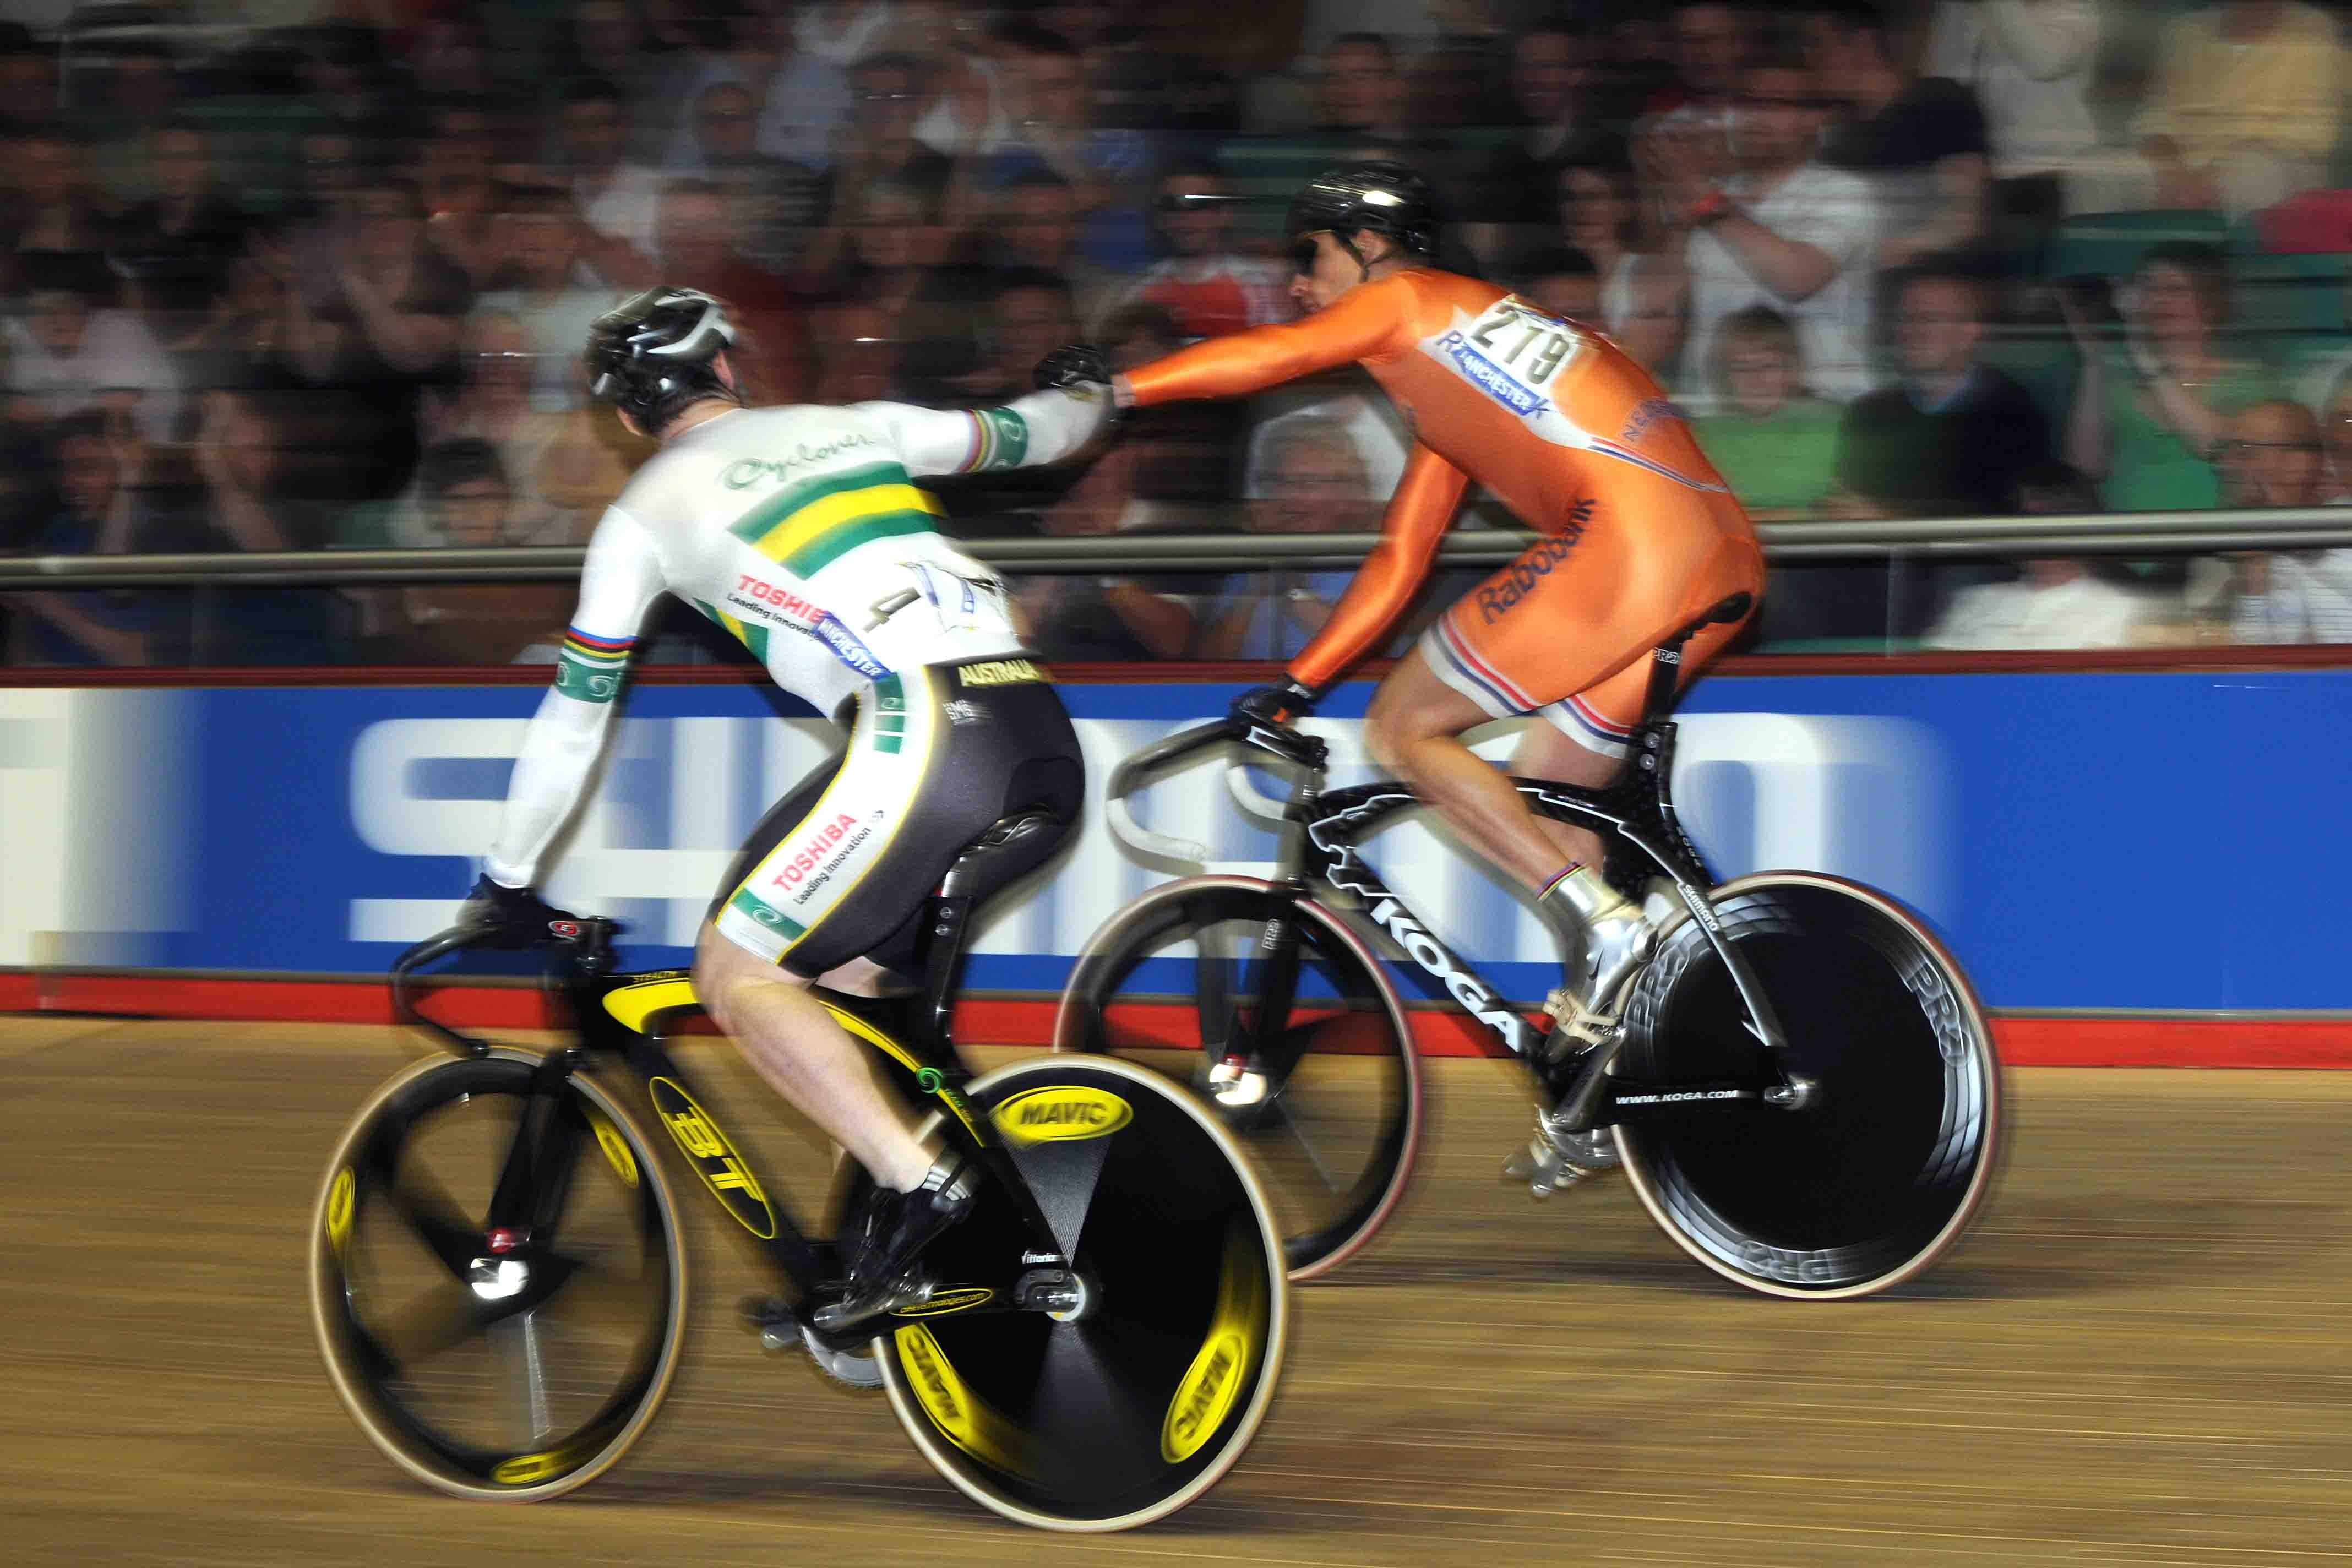 200820UCI20Track20Cycling20World20Championships20Day20220evening20012-83c4744